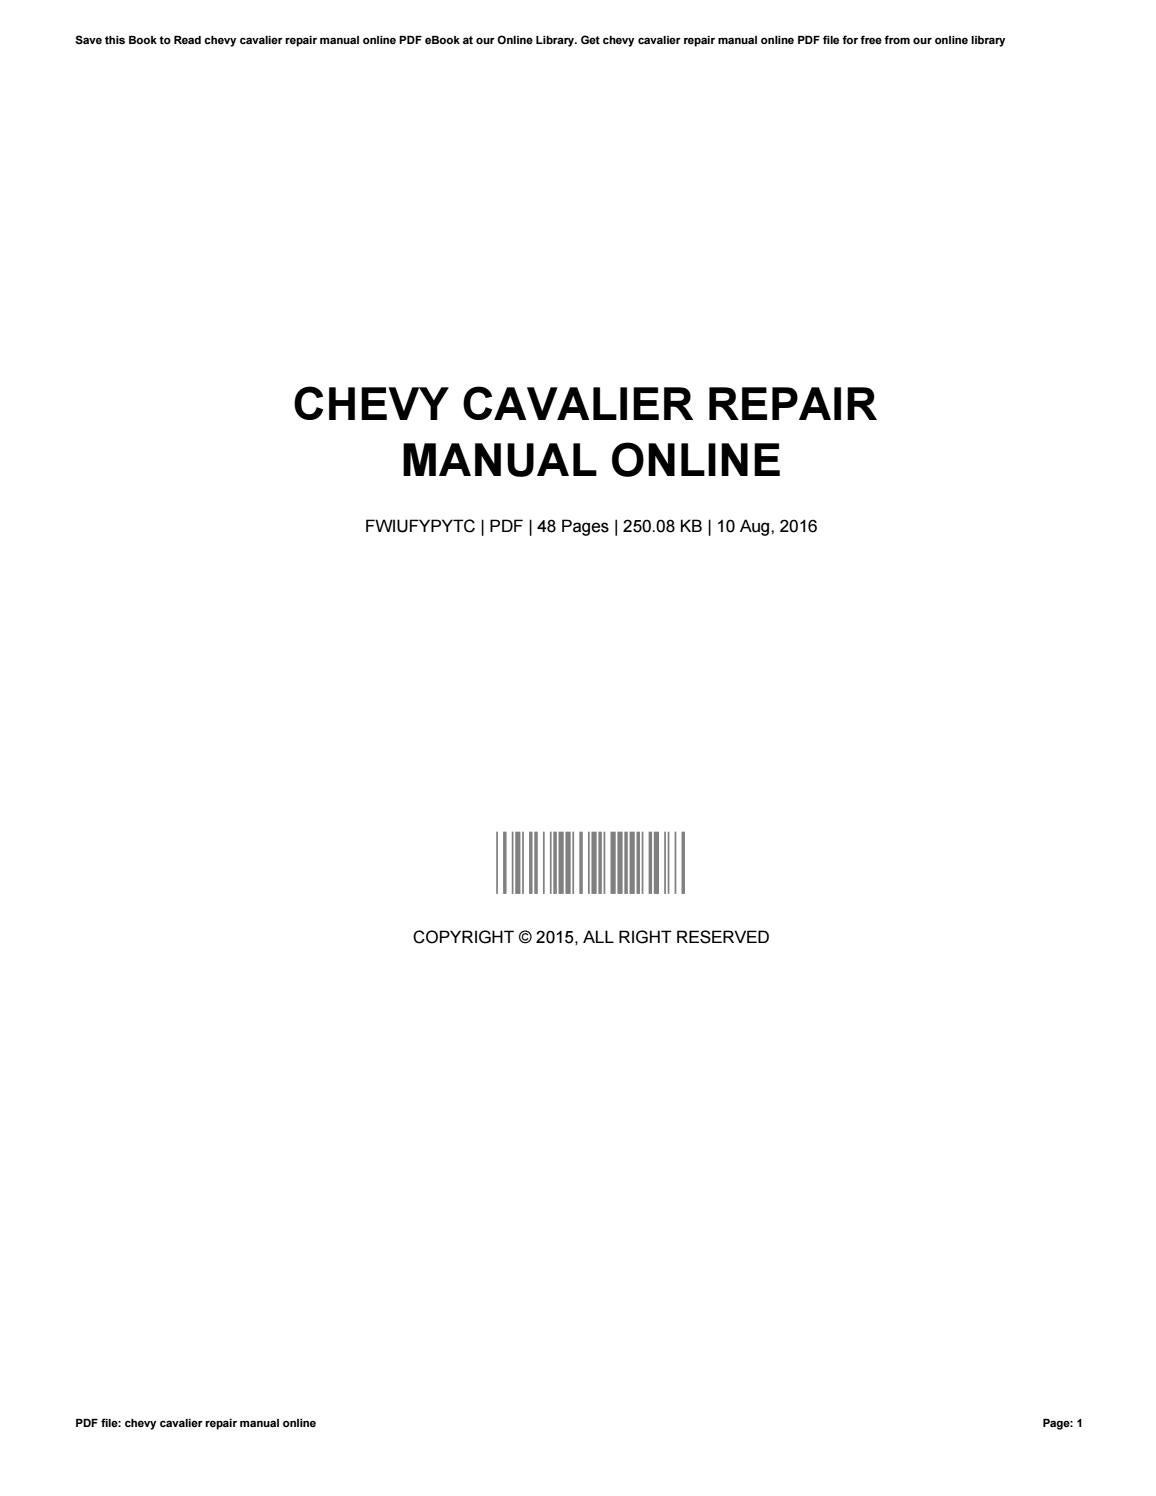 chevy cavalier repair manual online by daphnehagen1304 issuu 2005 Chevy Cavalier 2004 Chevrolet Cavalier Problems